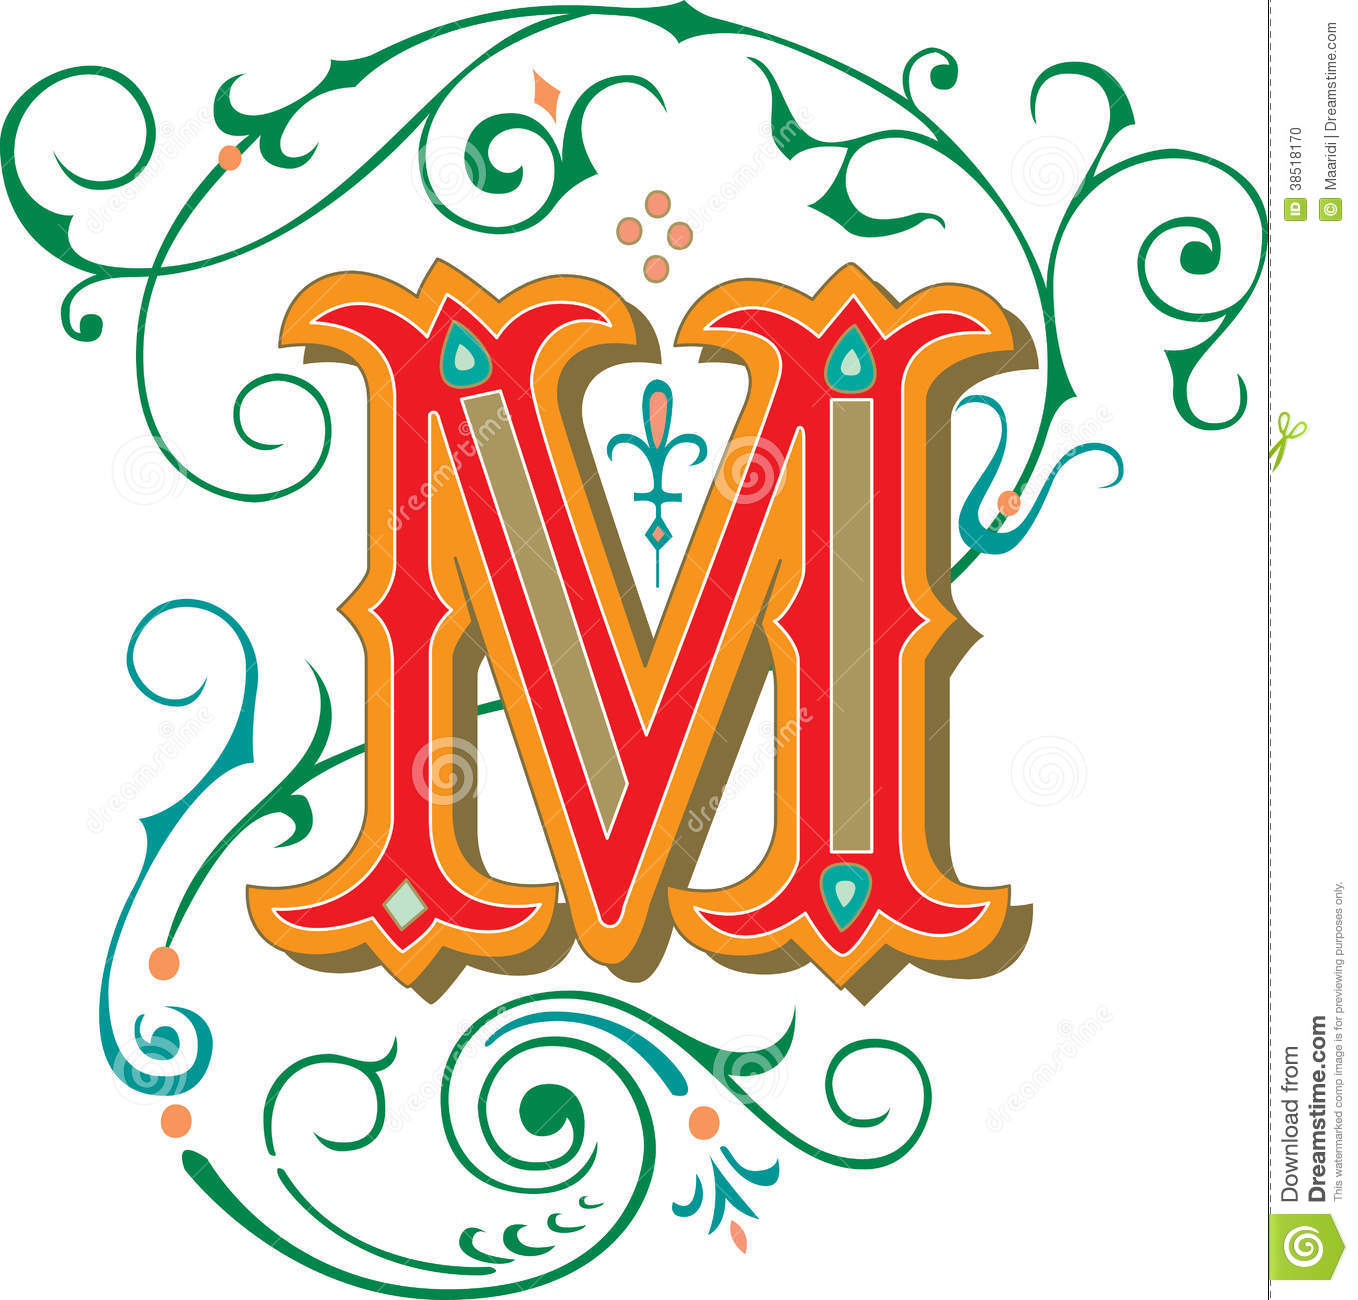 beautiful ornate alphabets letter s grayscale beautiful ornament letter m stock vector illustration 939